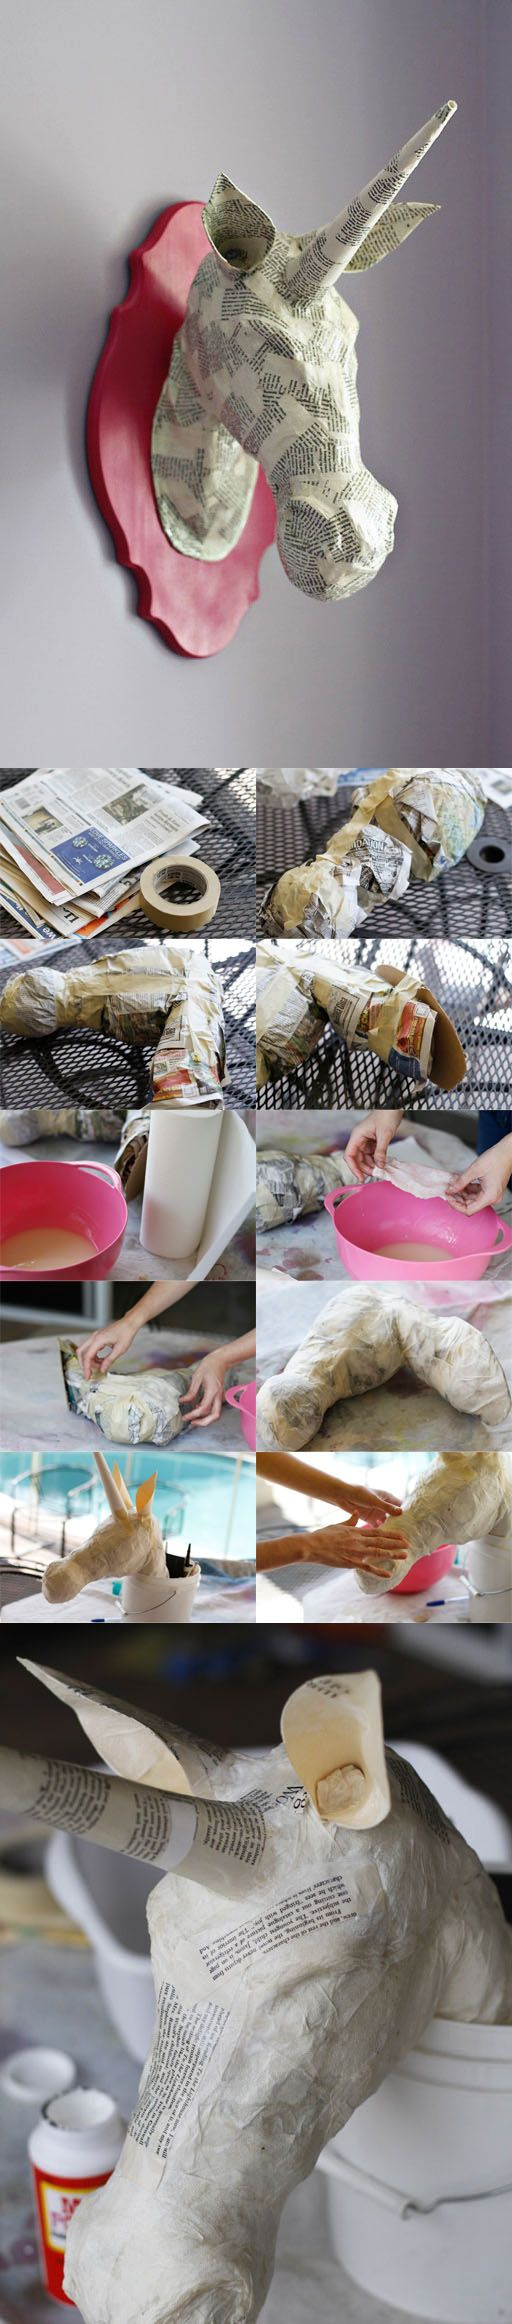 DIY :: PAPER MACHE ANIMAL HEADS (A TUTORIAL http://www.lilblueboo.com/2012/04/paper-mache-animal-heads-a-tutorial.html )